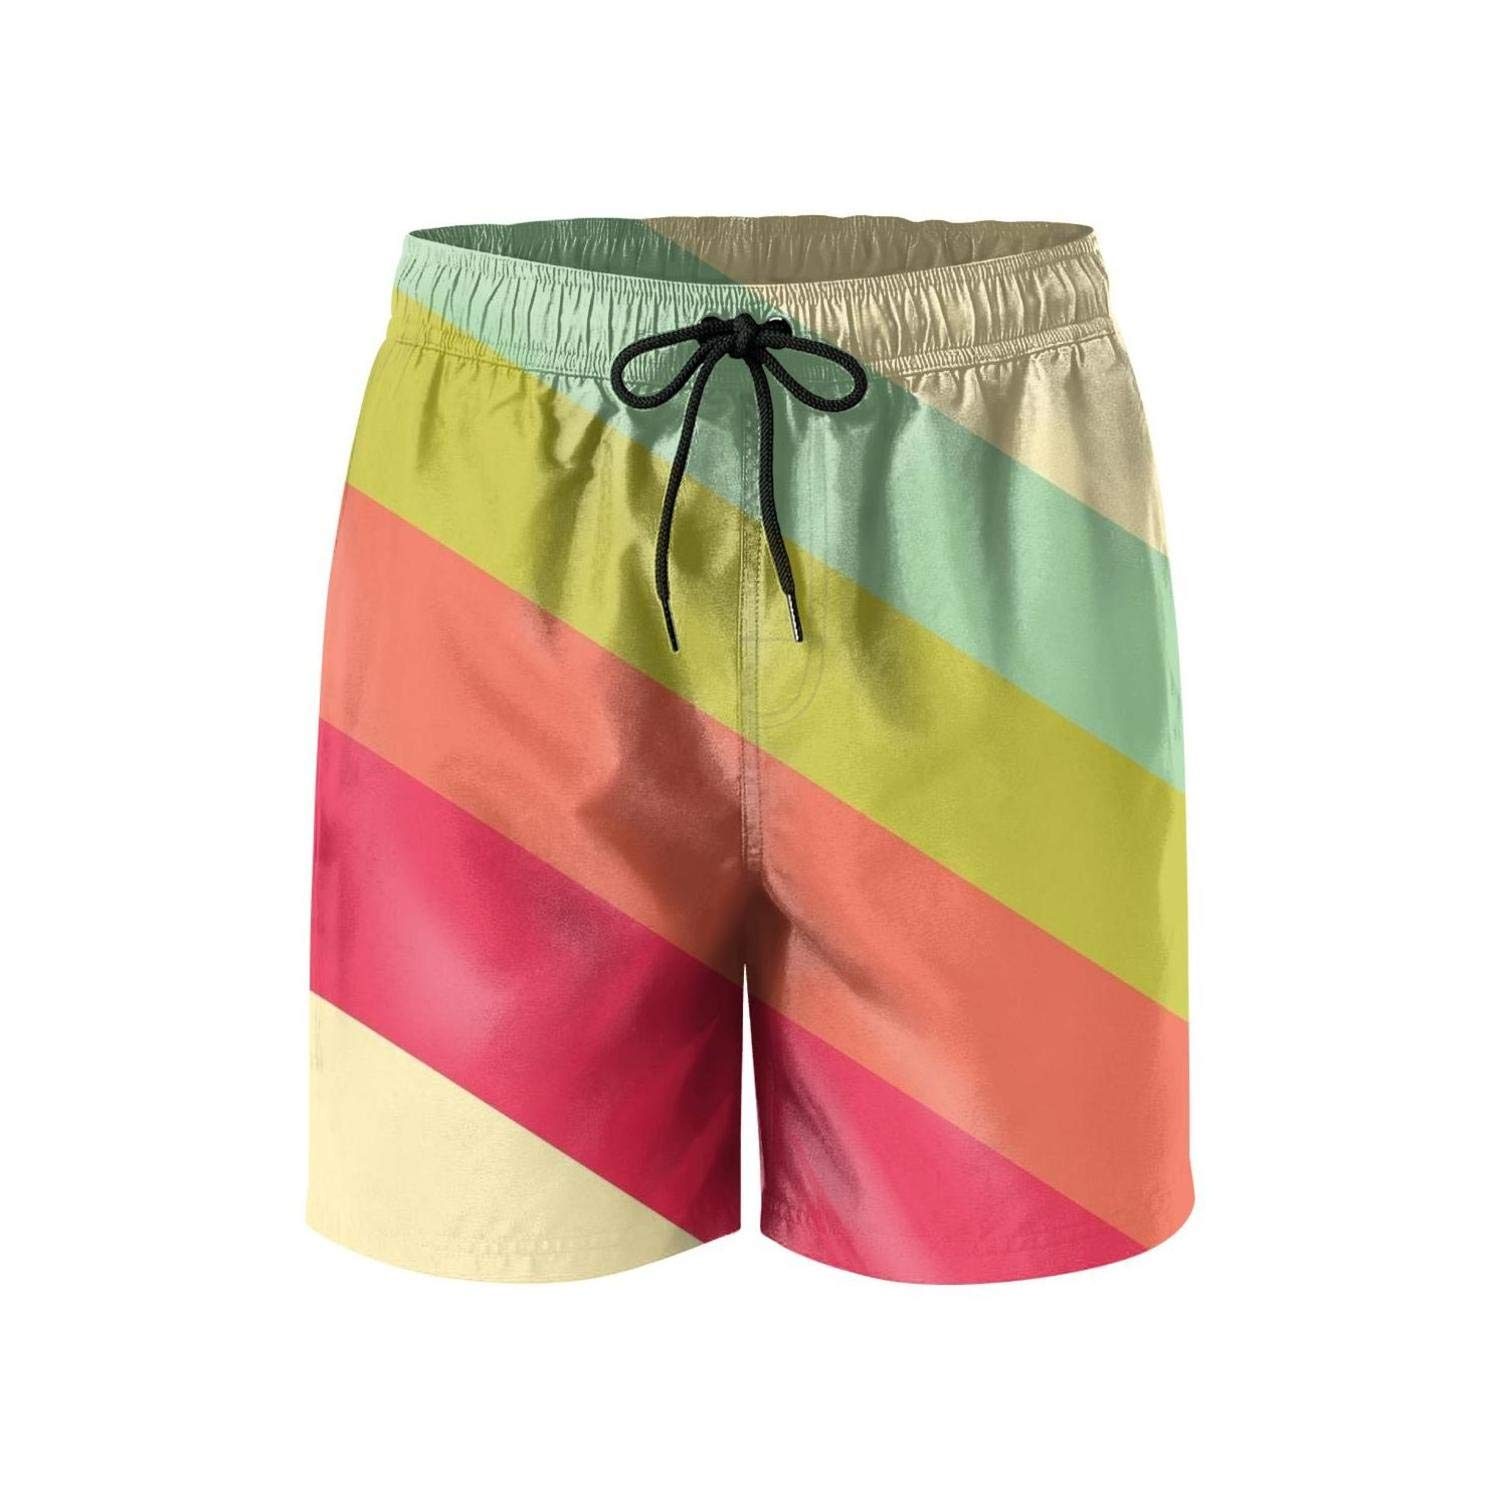 PPANFKEI Dream Big Surfing Trunk Breathable Watershorts with Adjustable Waistband